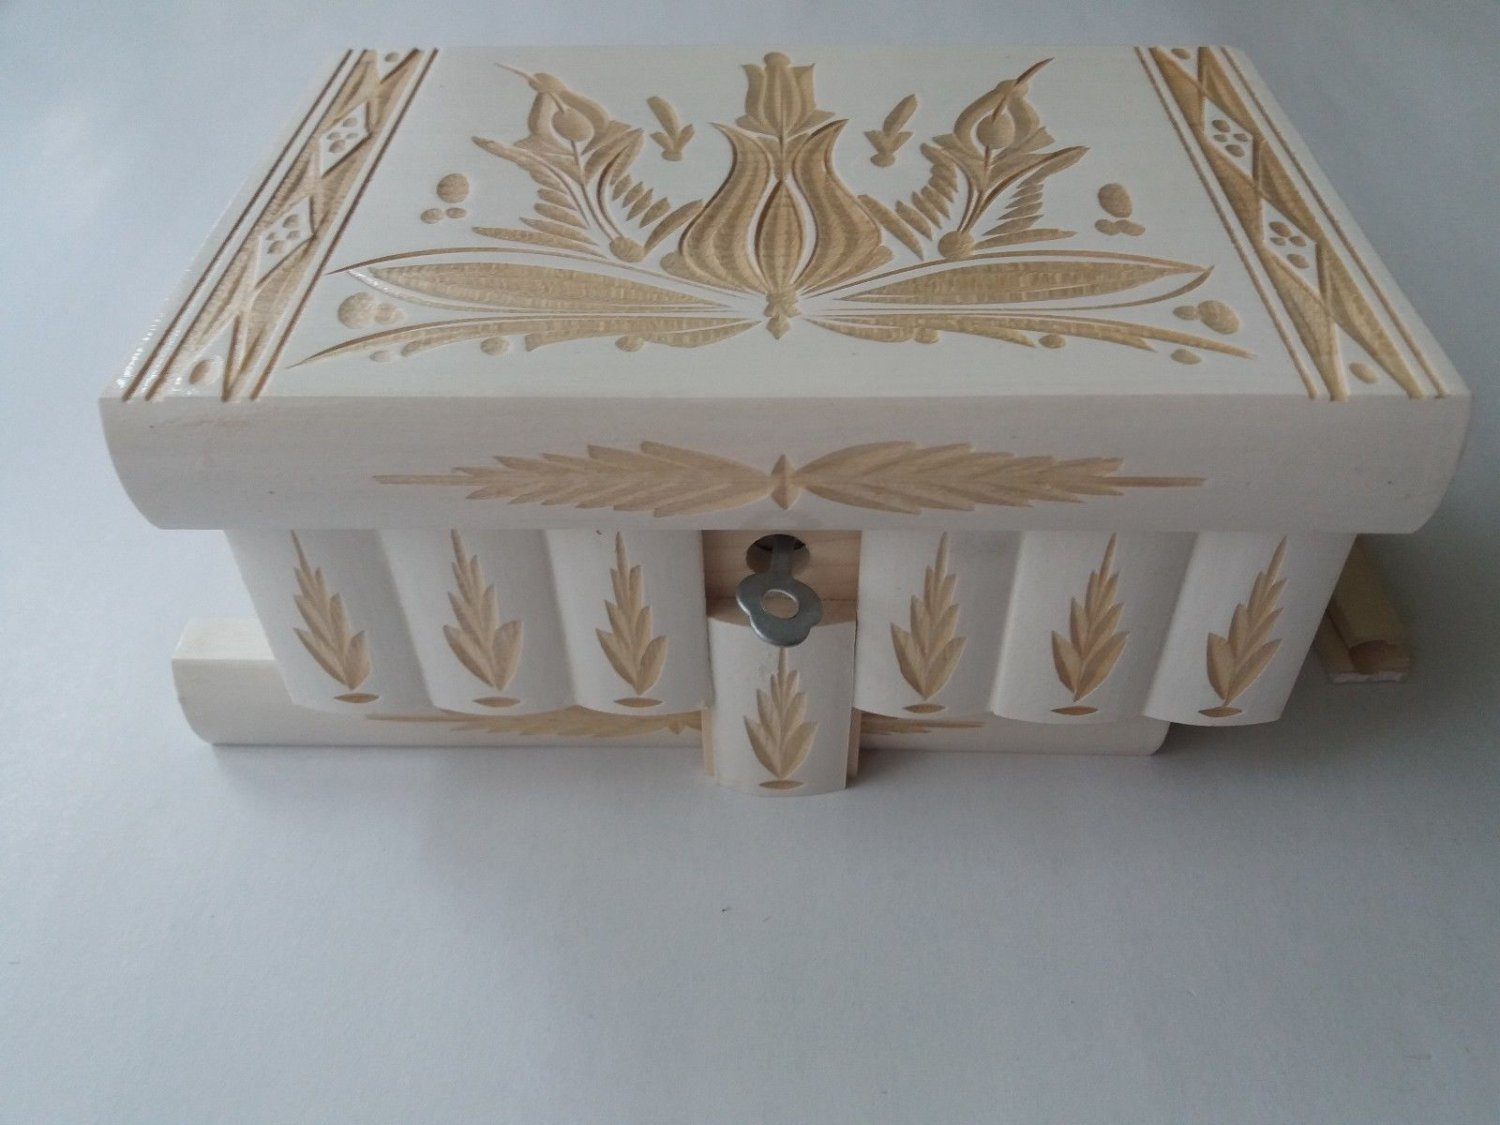 New white carved wooden mystery wizard jewelry puzzle magic box brain teaser